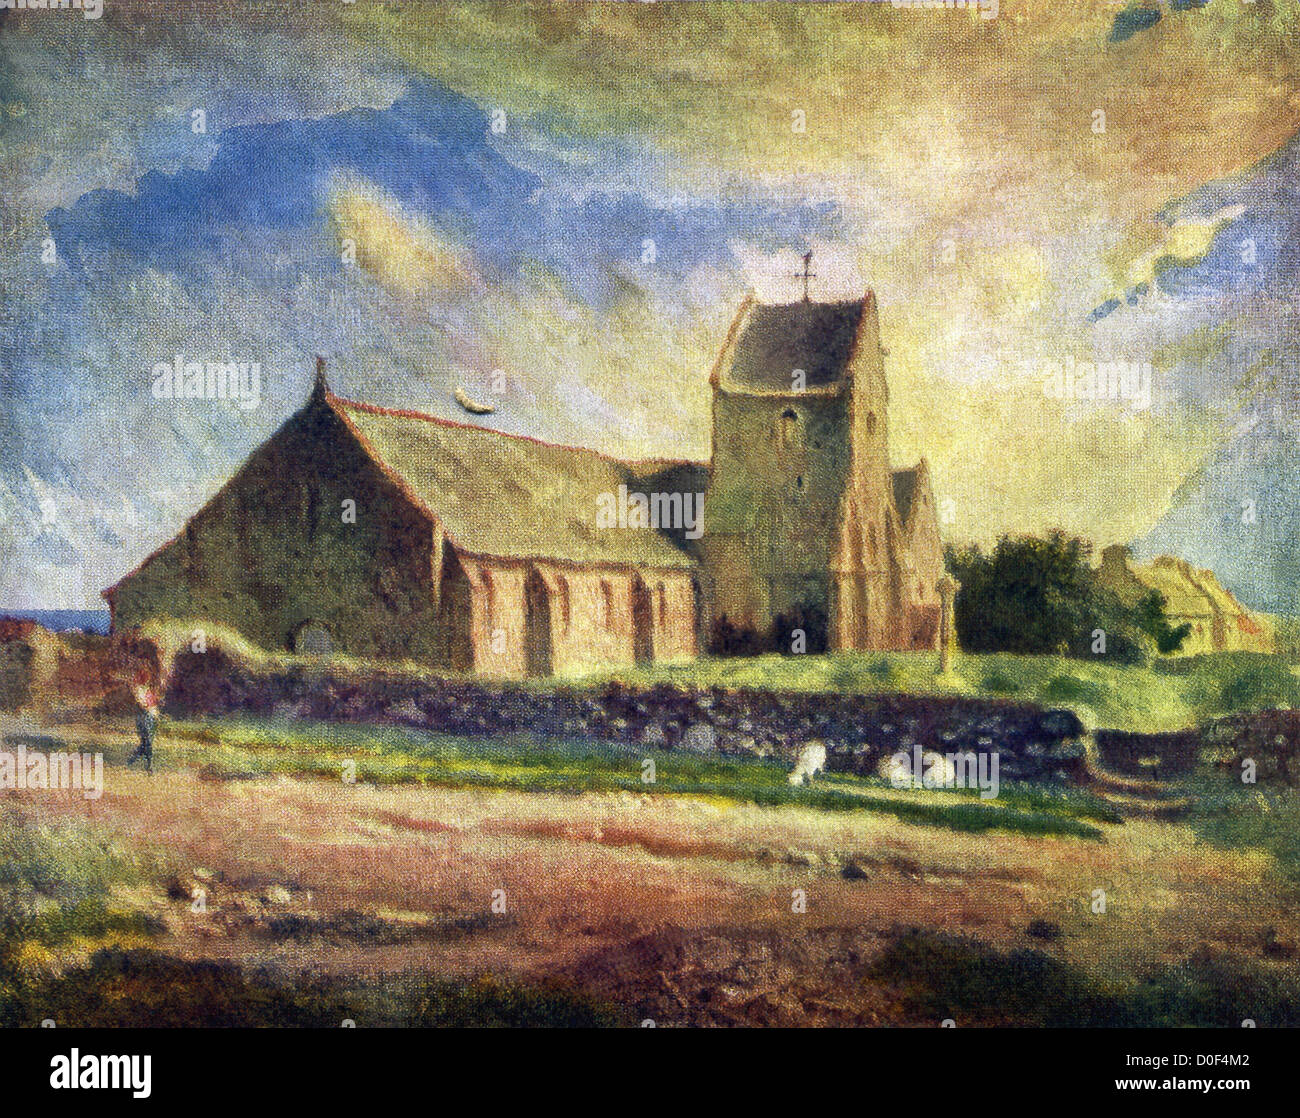 The Church at Greville, by Jean Francois Millet, is one of the subtlest landscapes by the artist in existence. - Stock Image